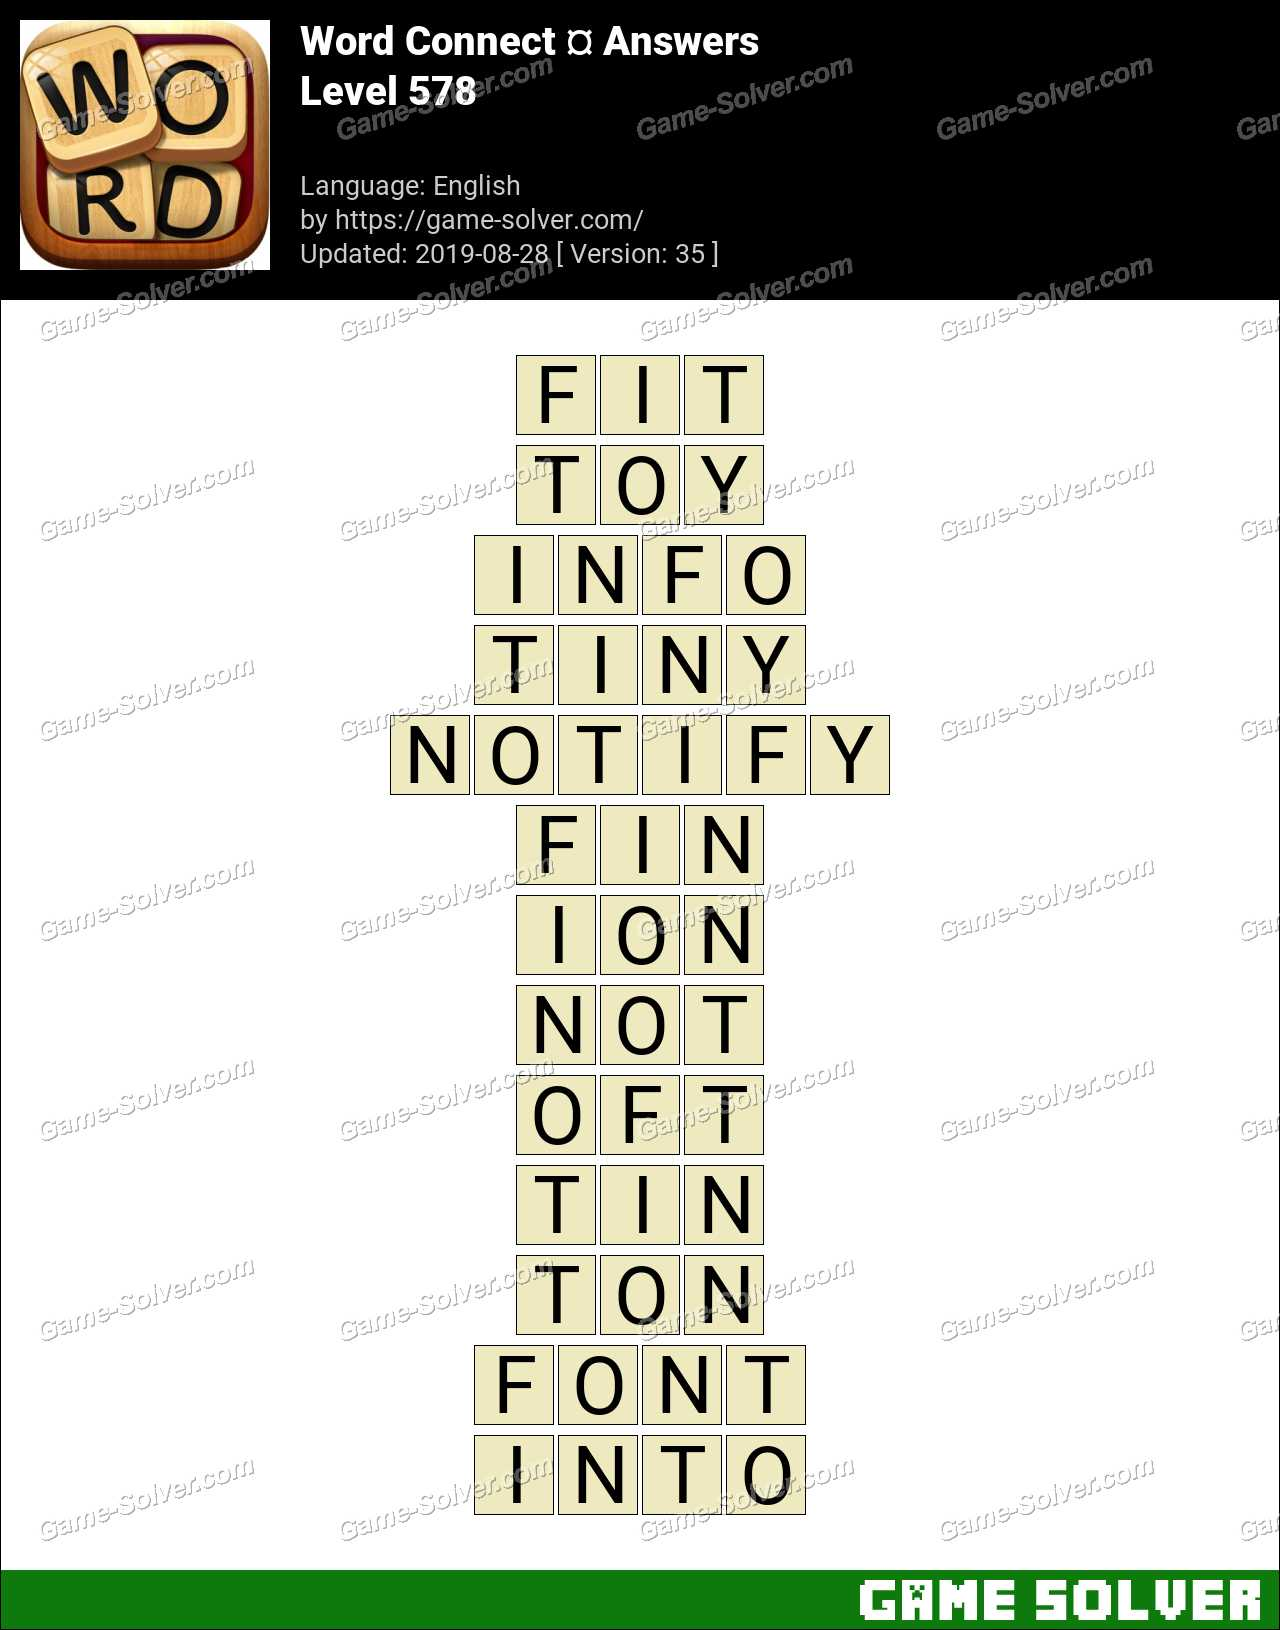 Word Connect Level 578 Answers